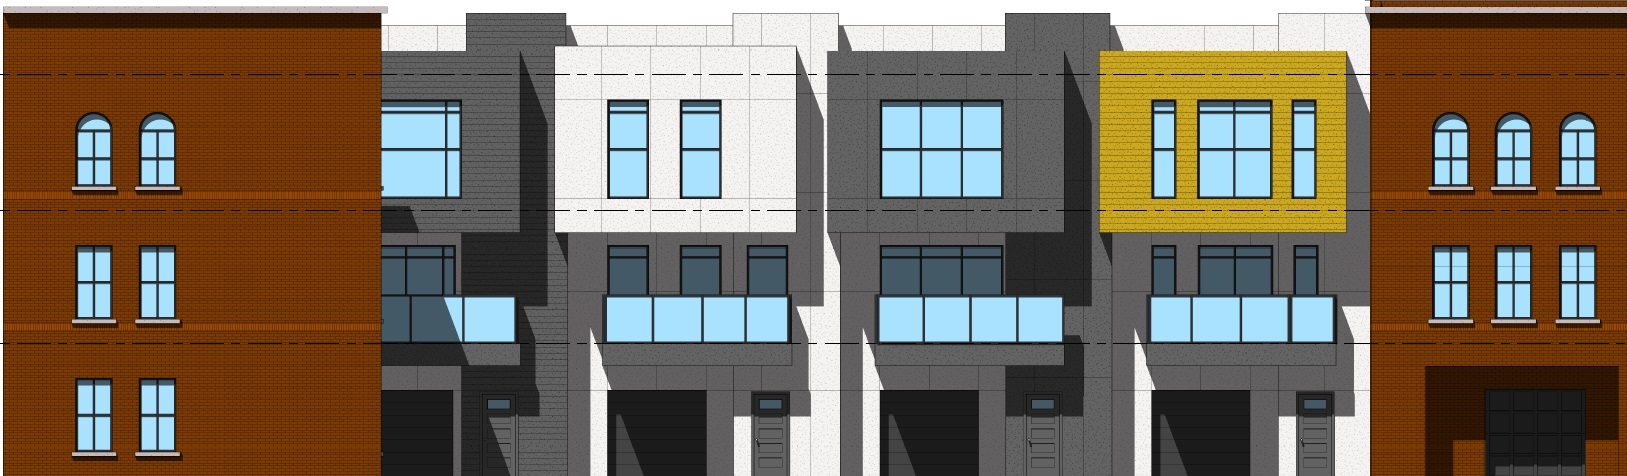 Legacy plans St. Louis Place townhomes; Jemal adds screen walls to Seneca Tower